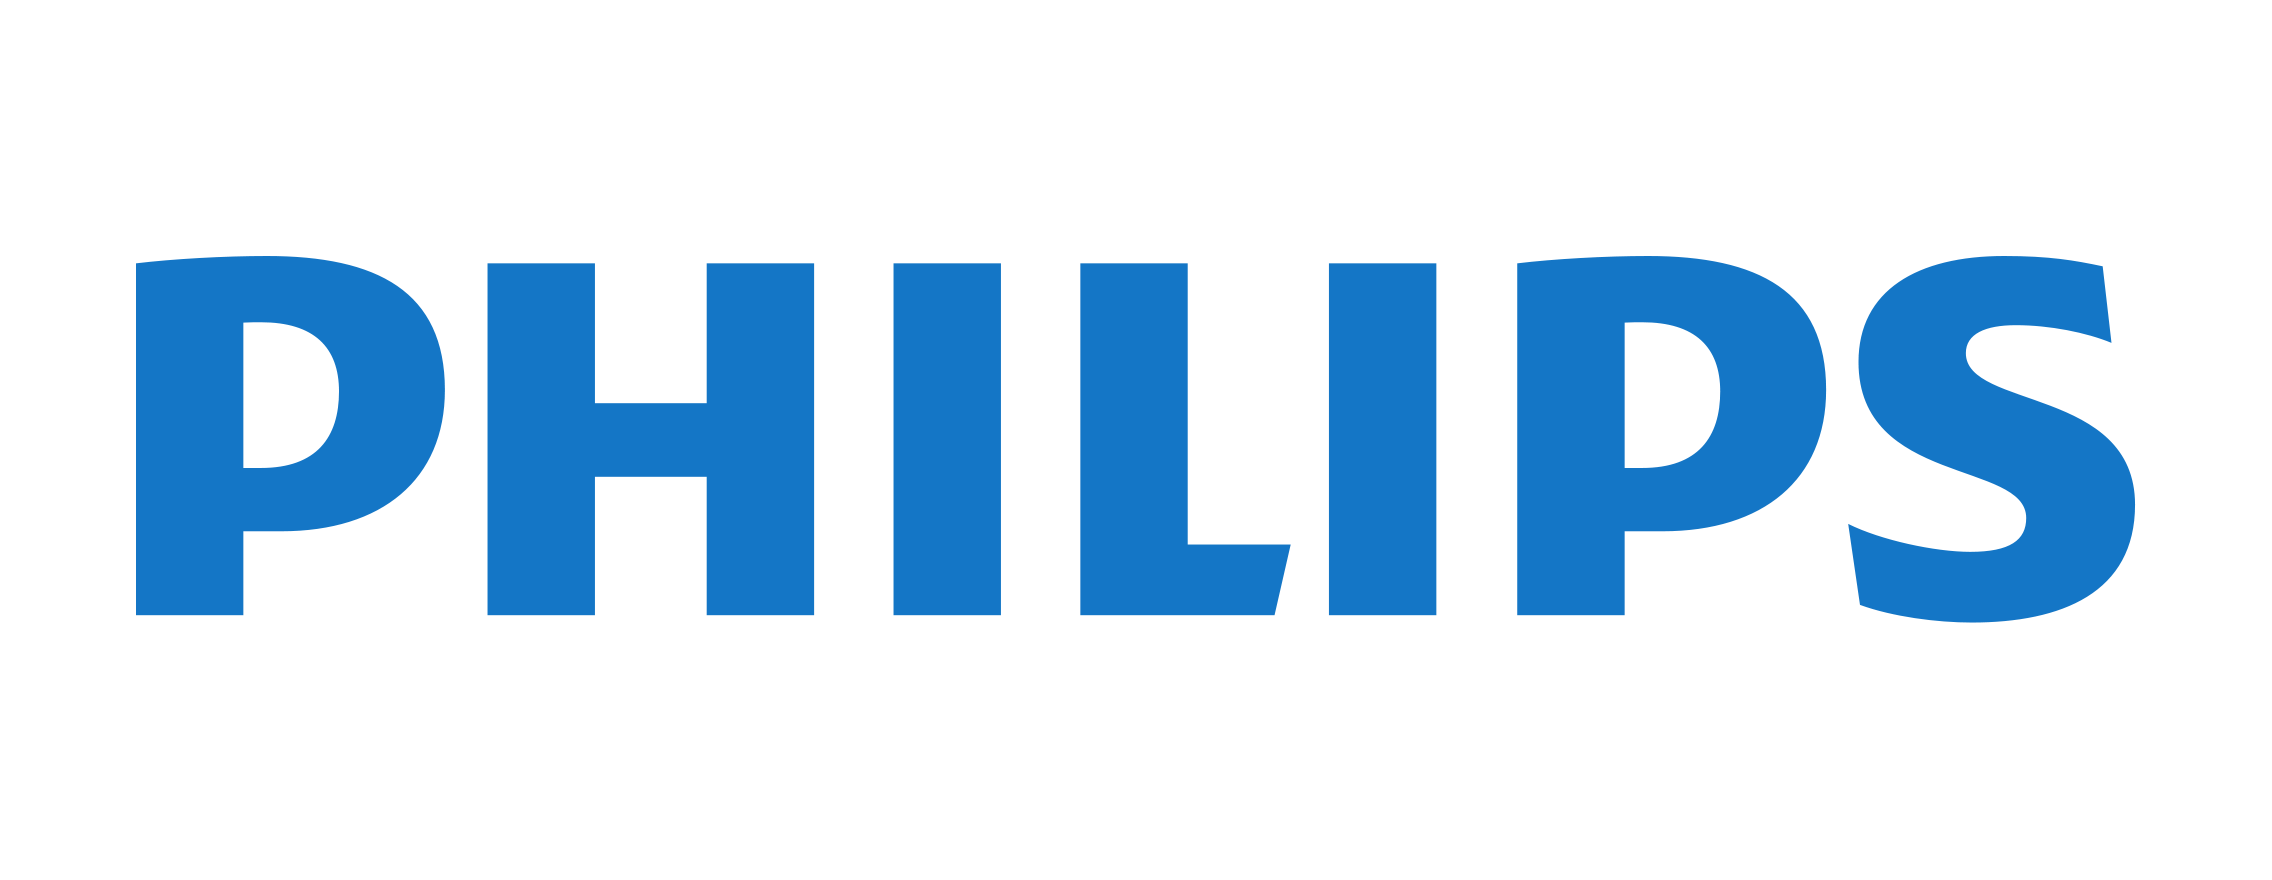 philips-logo-wordmark